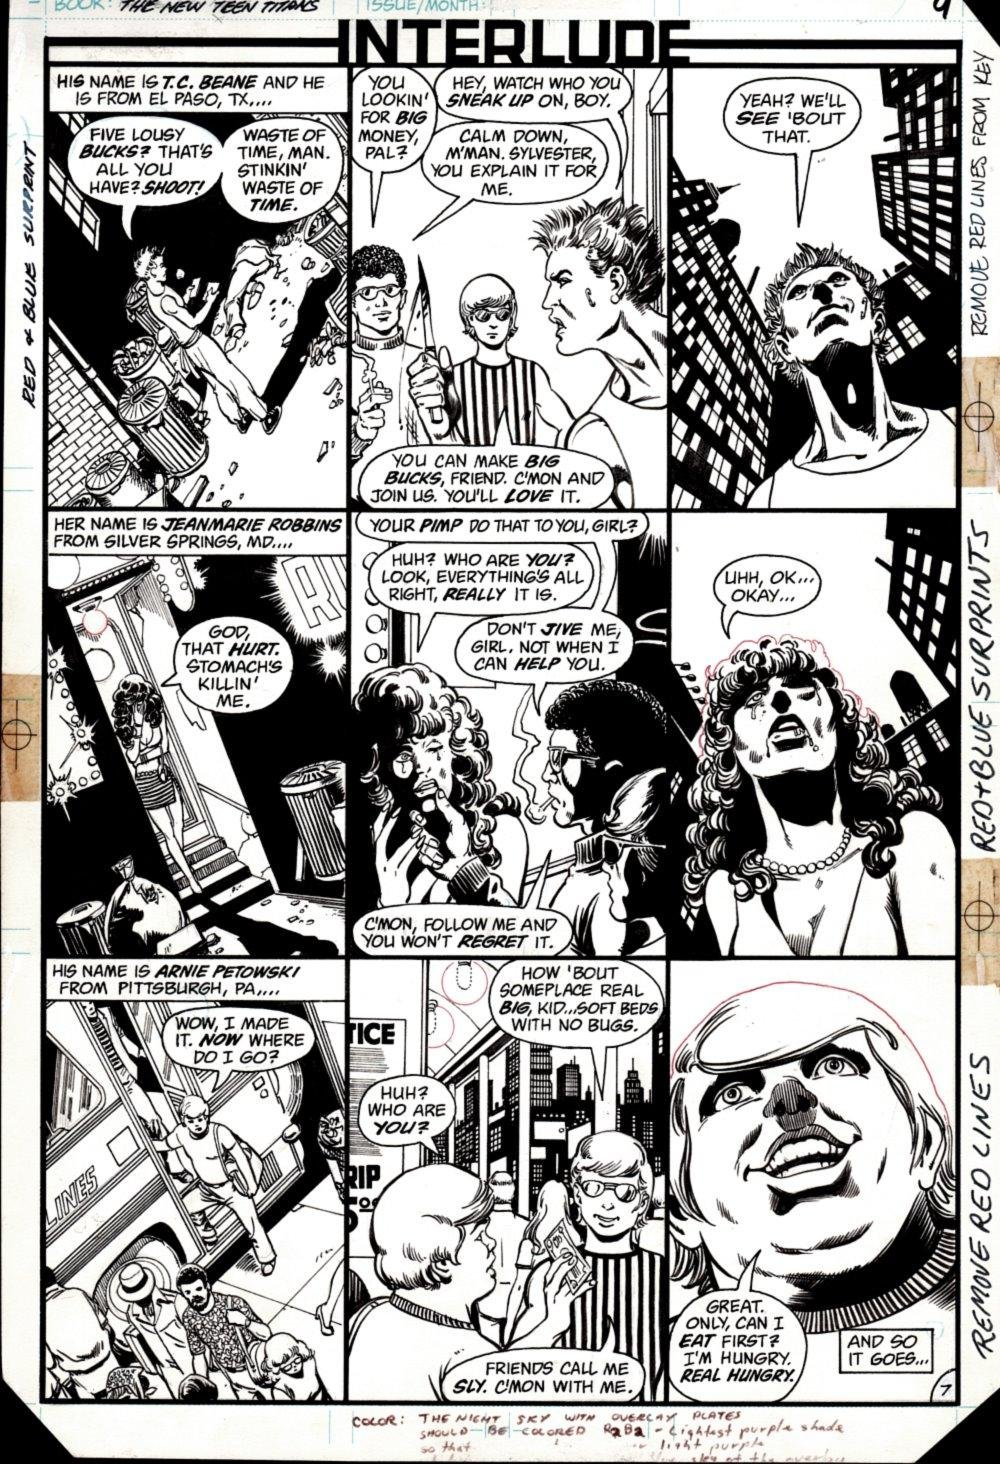 The New Teen Titans #27 p 8 (SOLD LIVE ON 'DUELING DEALERS OF COMIC ART' EPISODE #13 PODCAST ON 4-21-2021 (RE-WATCH OUR LIVE ART SELLING PODCAST HERE!)